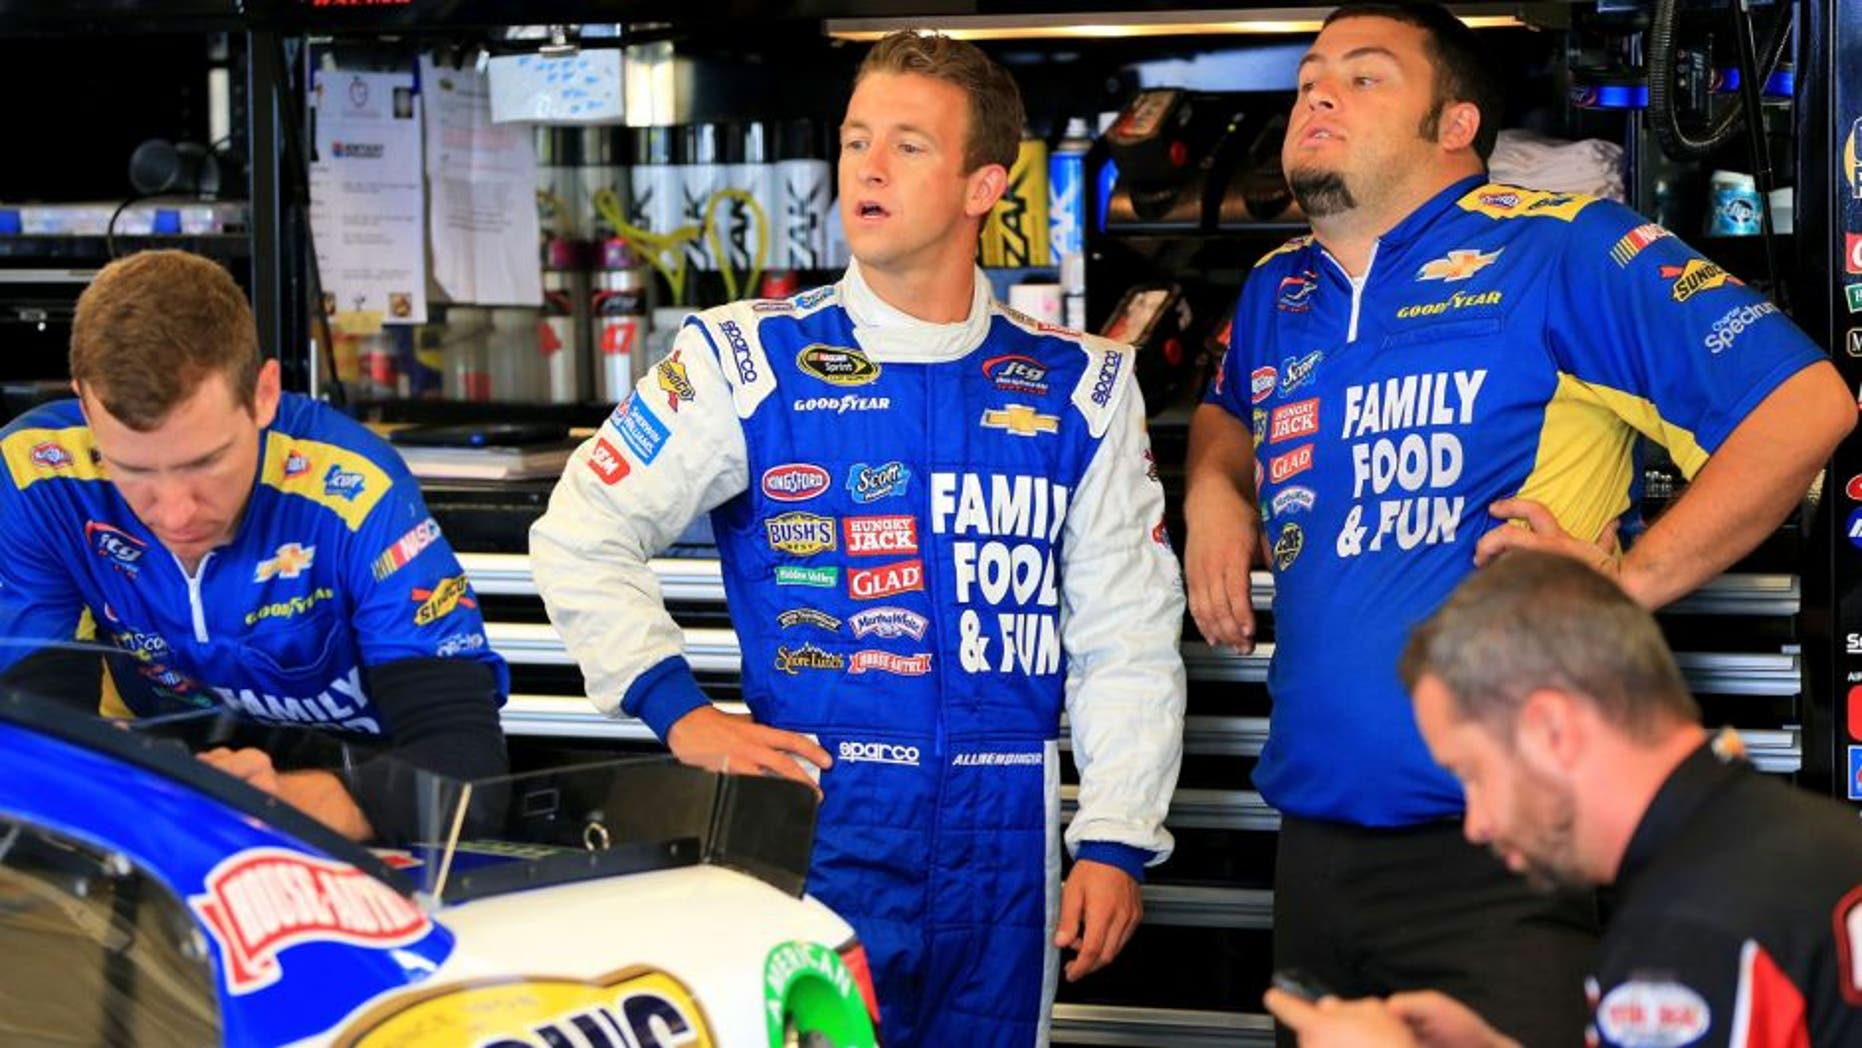 SPARTA, KY - JULY 10: AJ Allmendinger, driver of the #47 Kroger/Scott Products Chevrolet, center, looks on from the garage area during practice for the NASCAR Sprint Cup Series Quaker State 400 Presented by Advance Auto Parts at Kentucky Speedway on July 10, 2015 in Sparta, Kentucky. (Photo by Daniel Shirey/Getty Images)